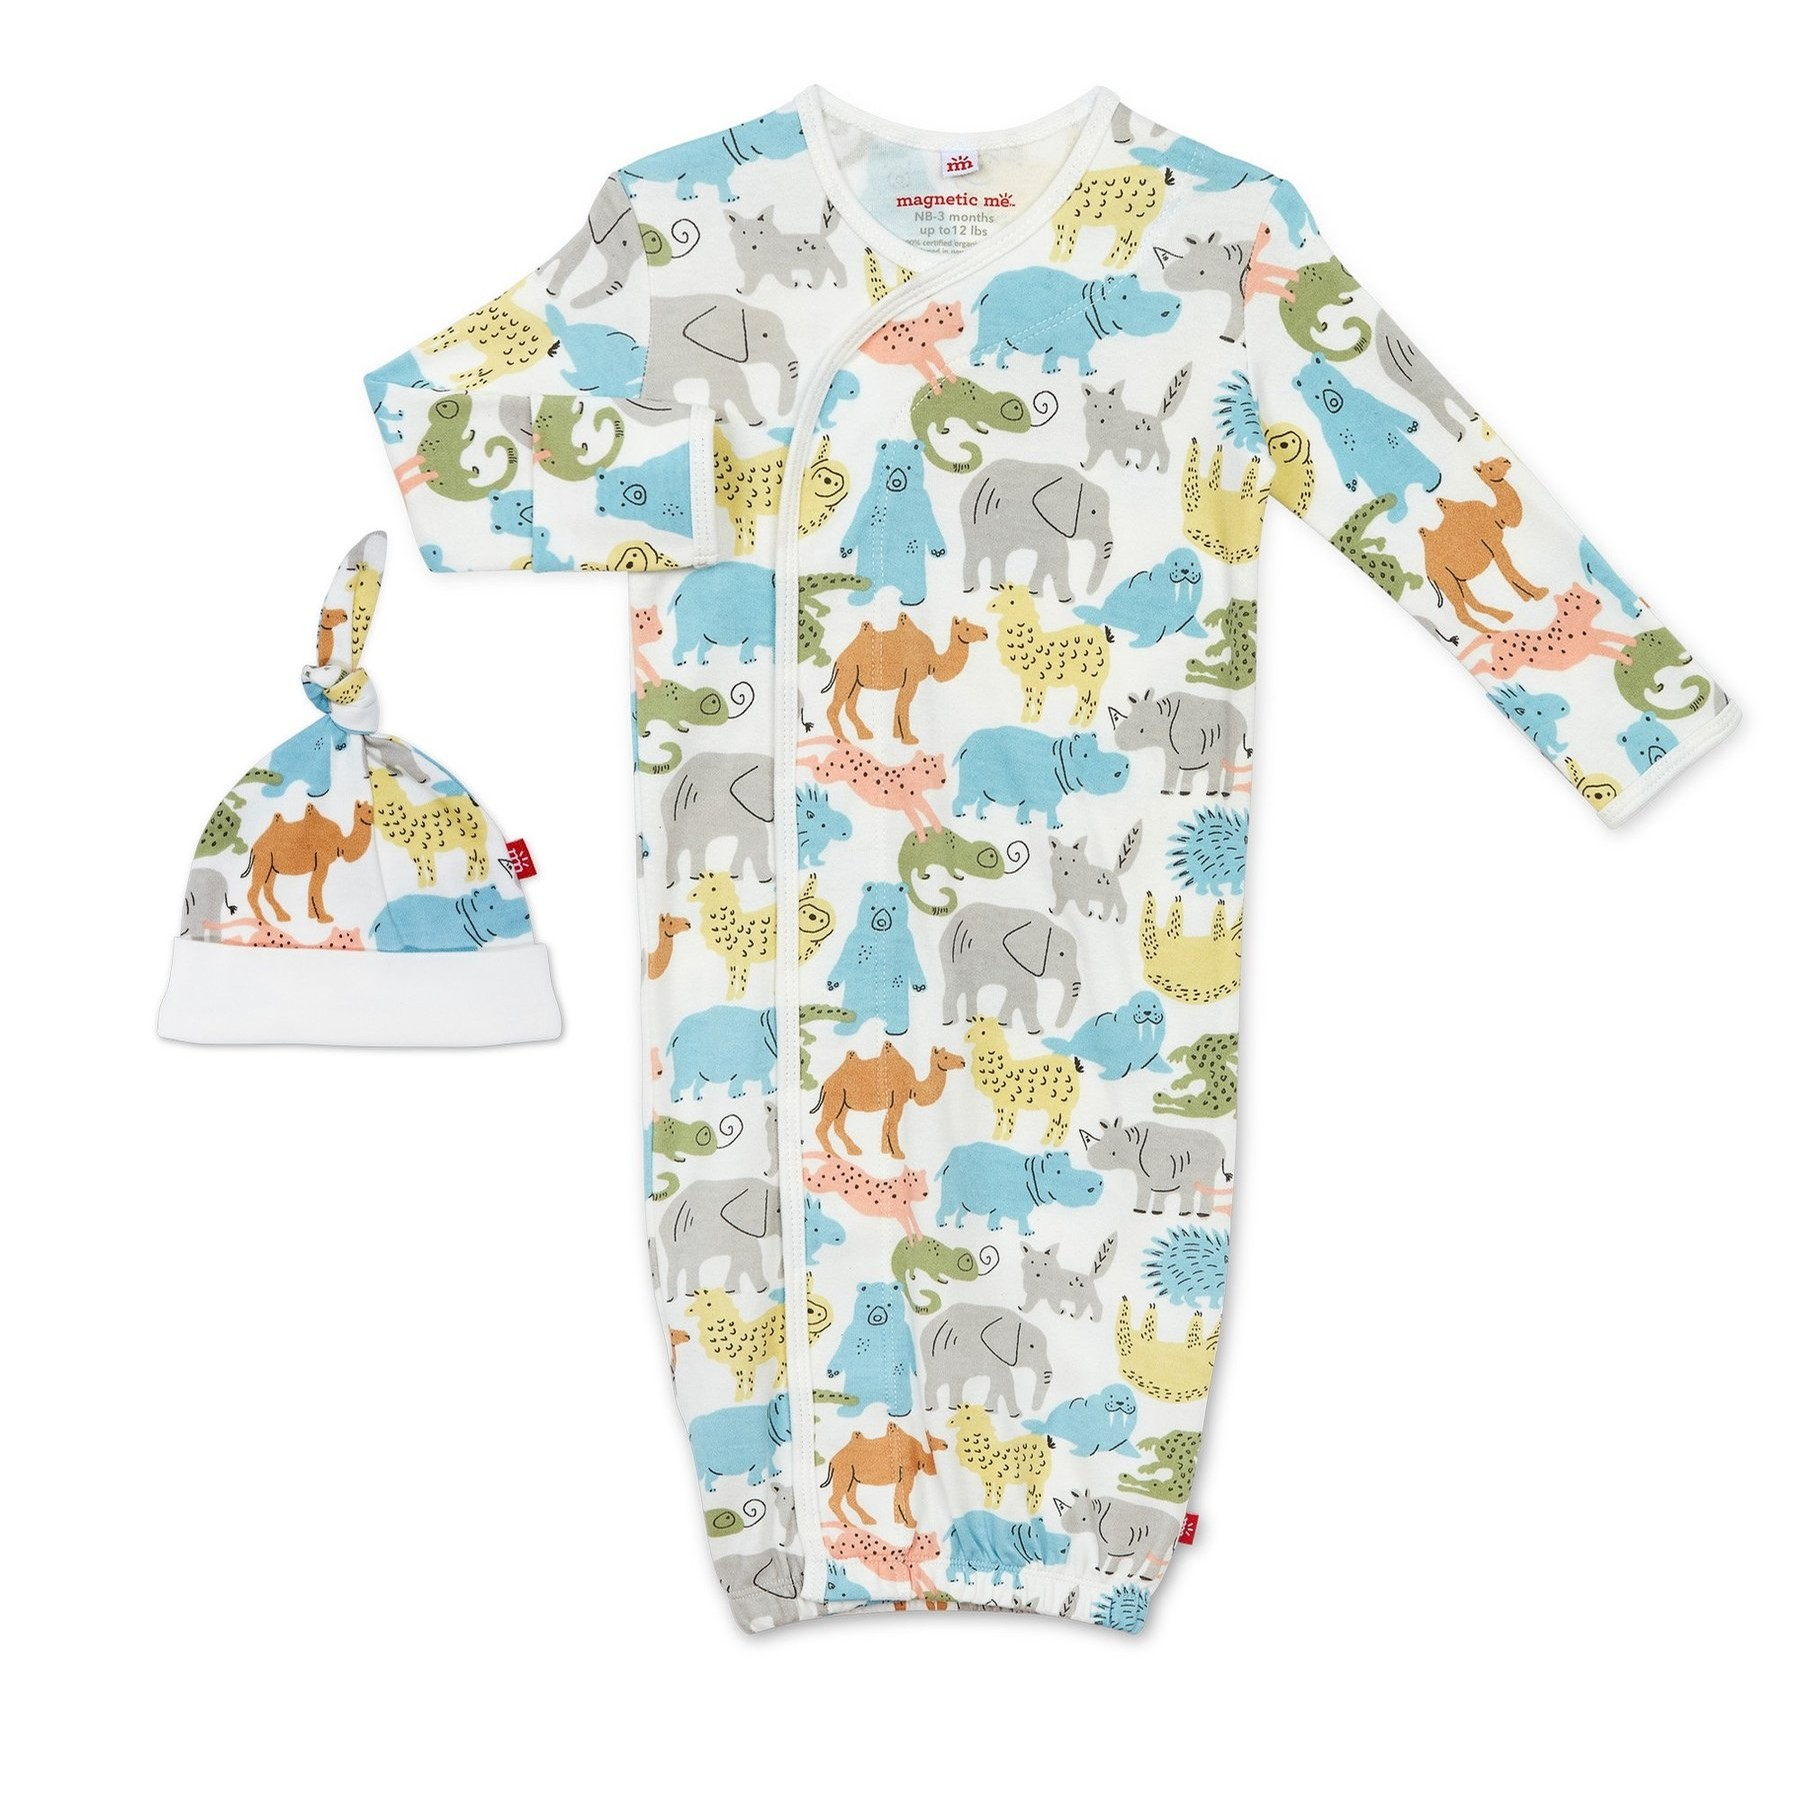 Zoo Crew Organic Cotton Magnetic Gown and Hat Set